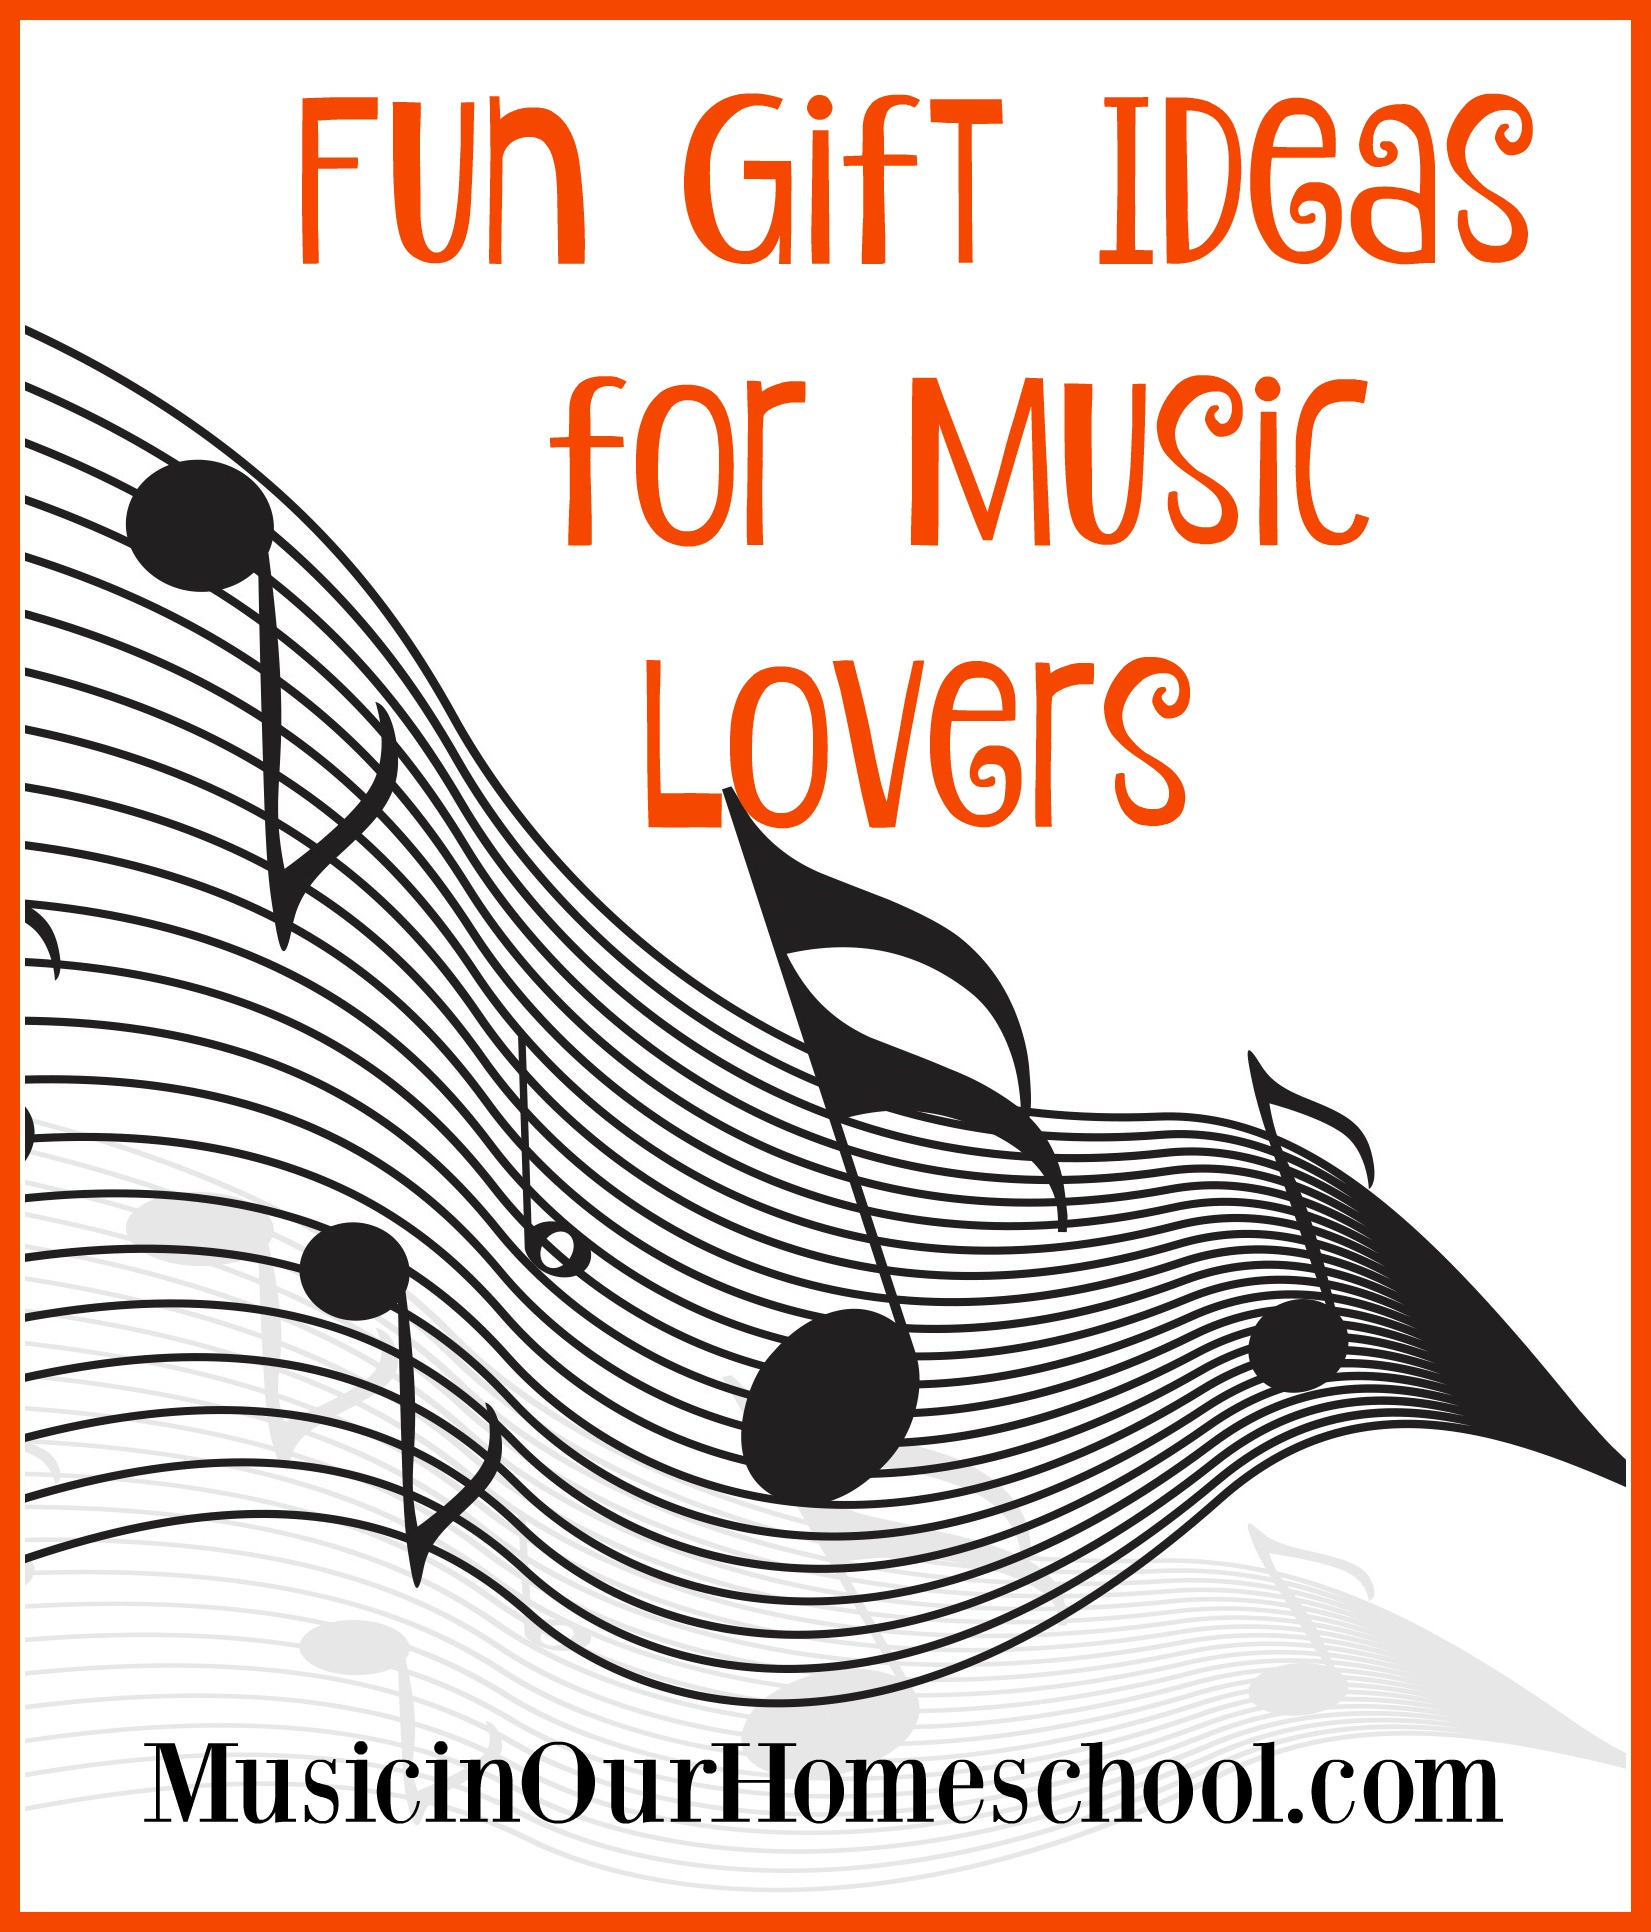 wonderful fun gift ideas for music lovers - music in our homeschool